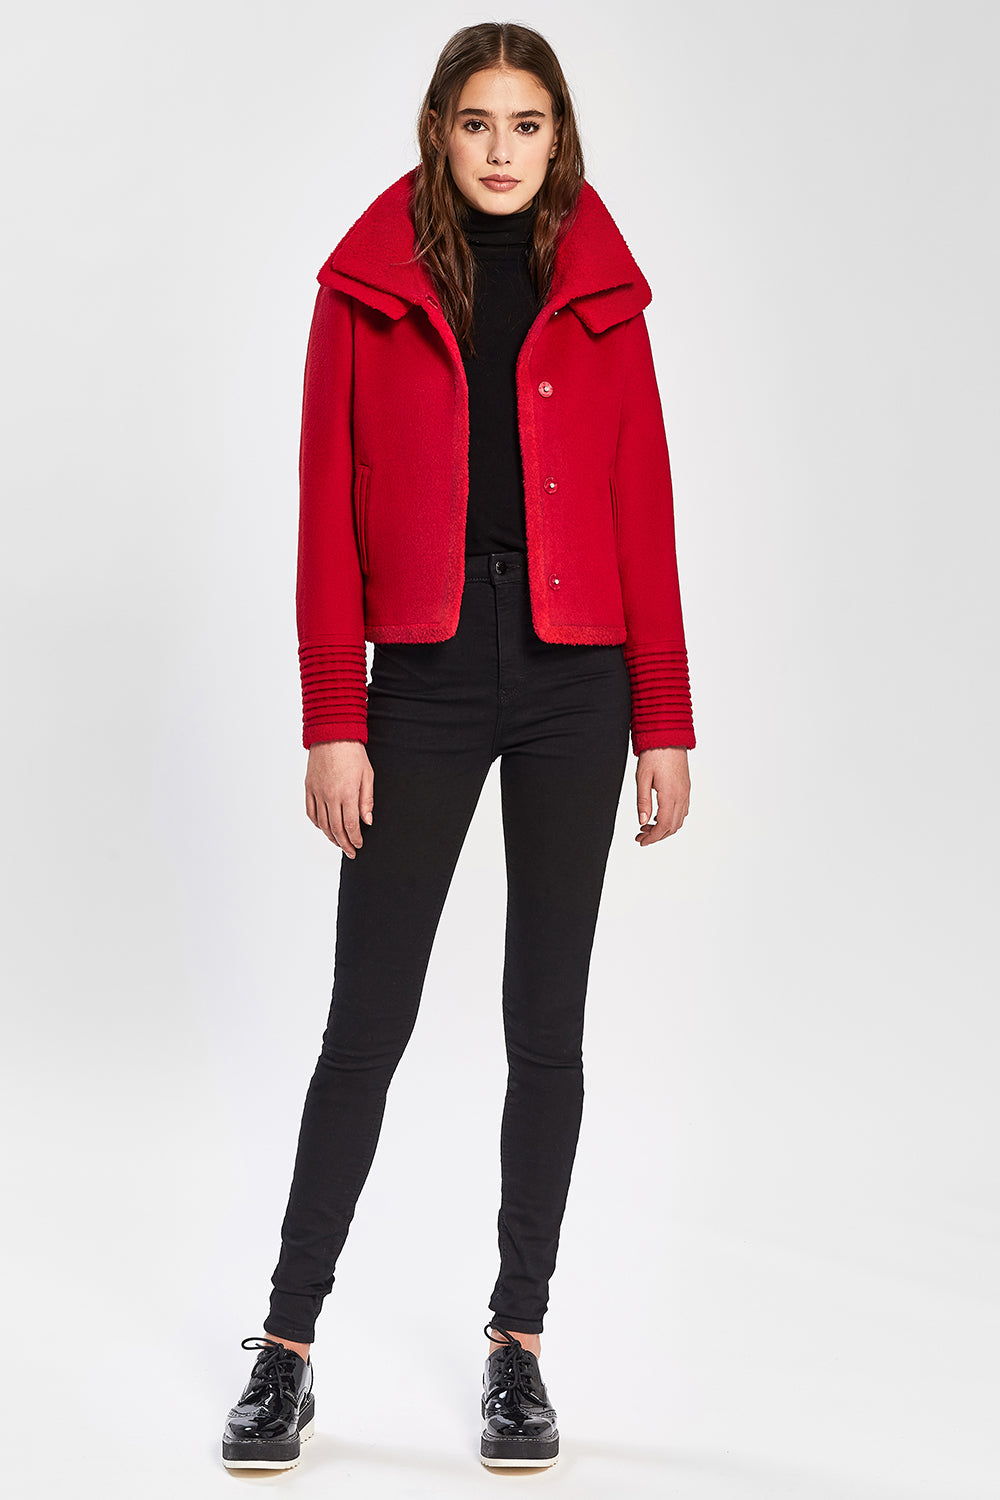 Sentaler Moto Jacket with Signature Double Collar featured in Baby Alpaca and available in Scarlet Red. Seen open.